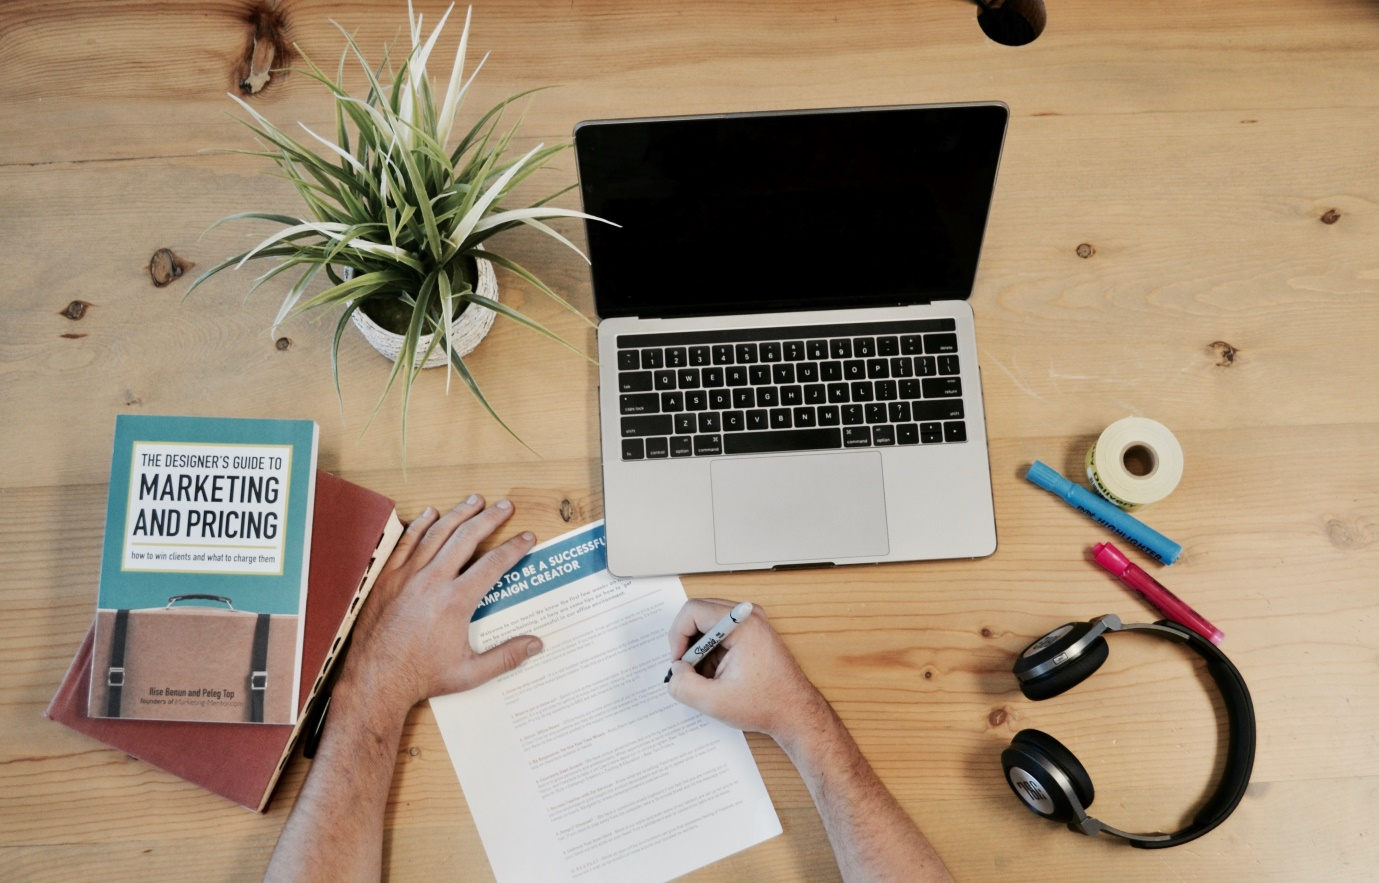 4 Steps To Creating A Good Digital Marketing Campaign